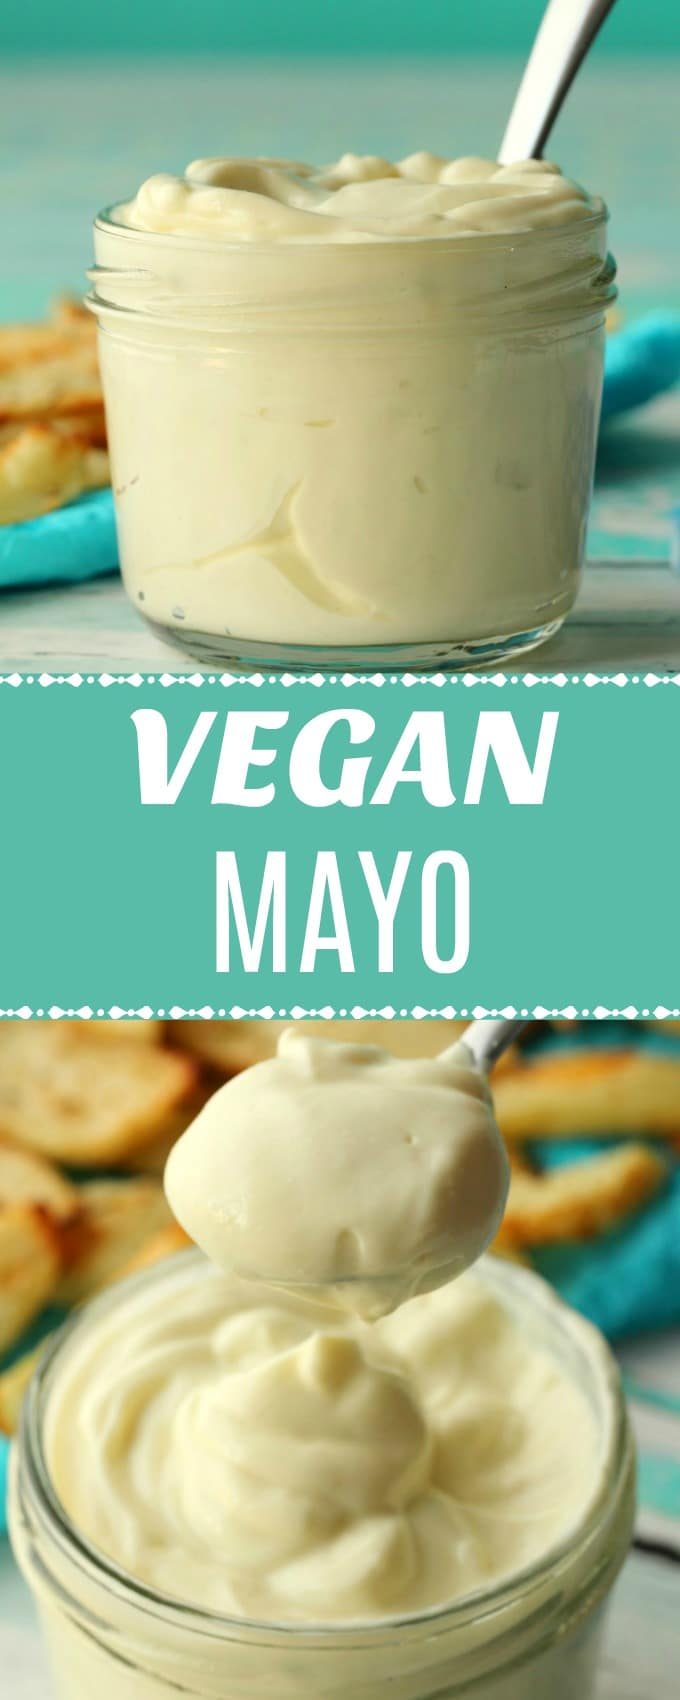 Rich and thick vegan mayo made with 6 easy ingredients and ready in 5 minutes from start to finish! Ultra creamy, with just the right amount of tangy, this is so good you won't believe you made it yourself! | lovingitvegan.com